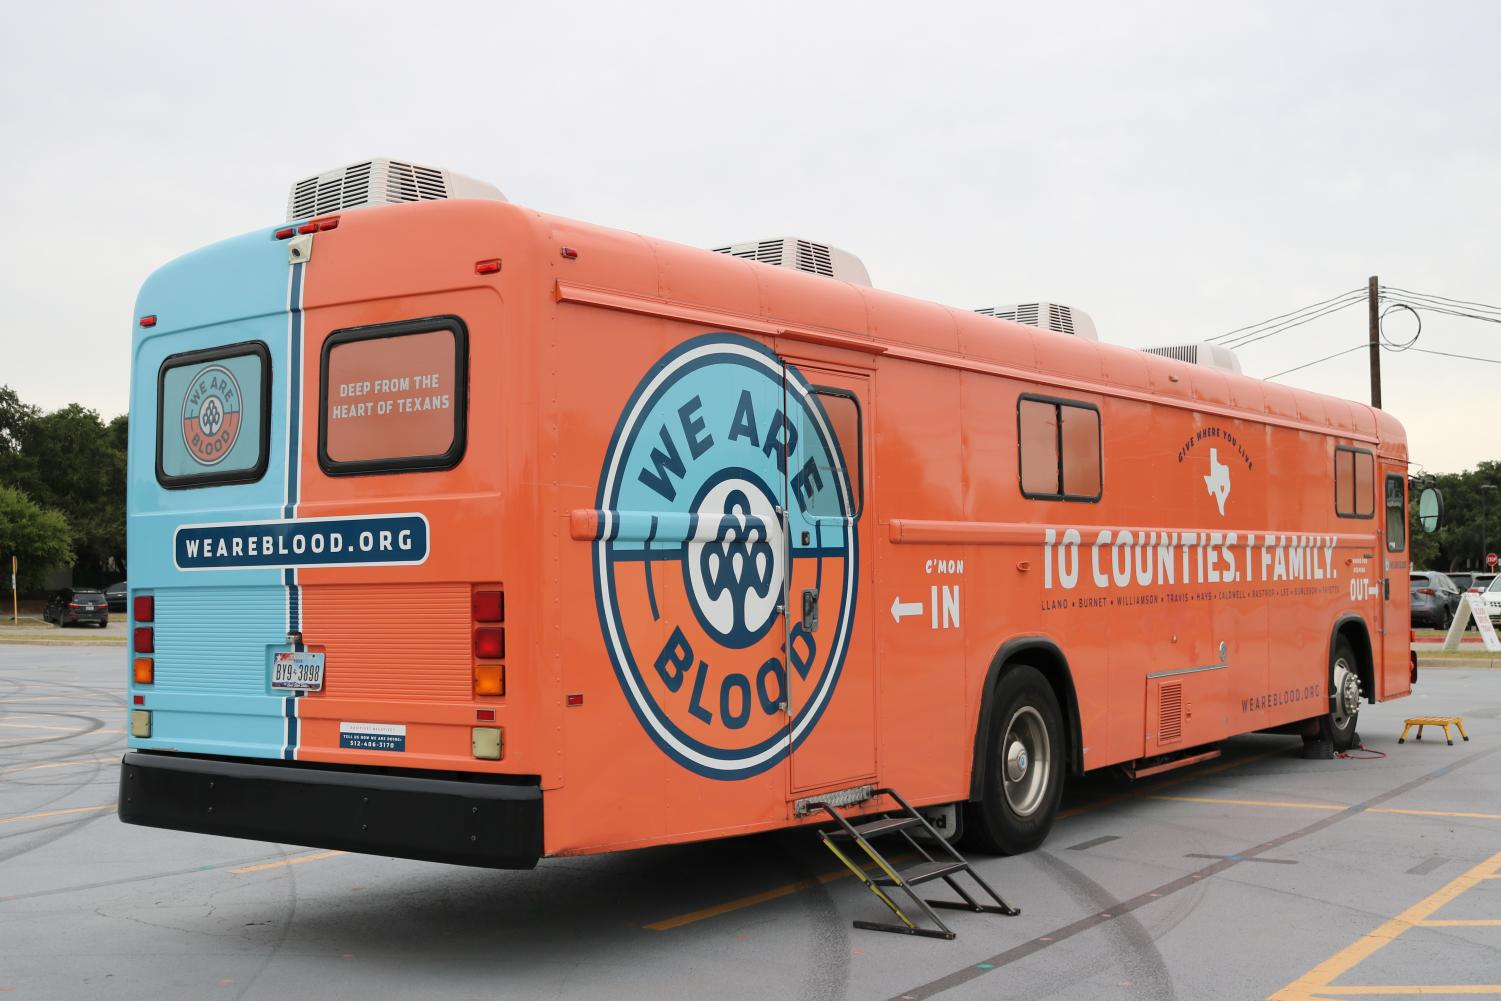 The+We+Are+Blood+bus+sits+in+the+Westwood+Band+practice+lot+with+participants+donating+blood+inside.